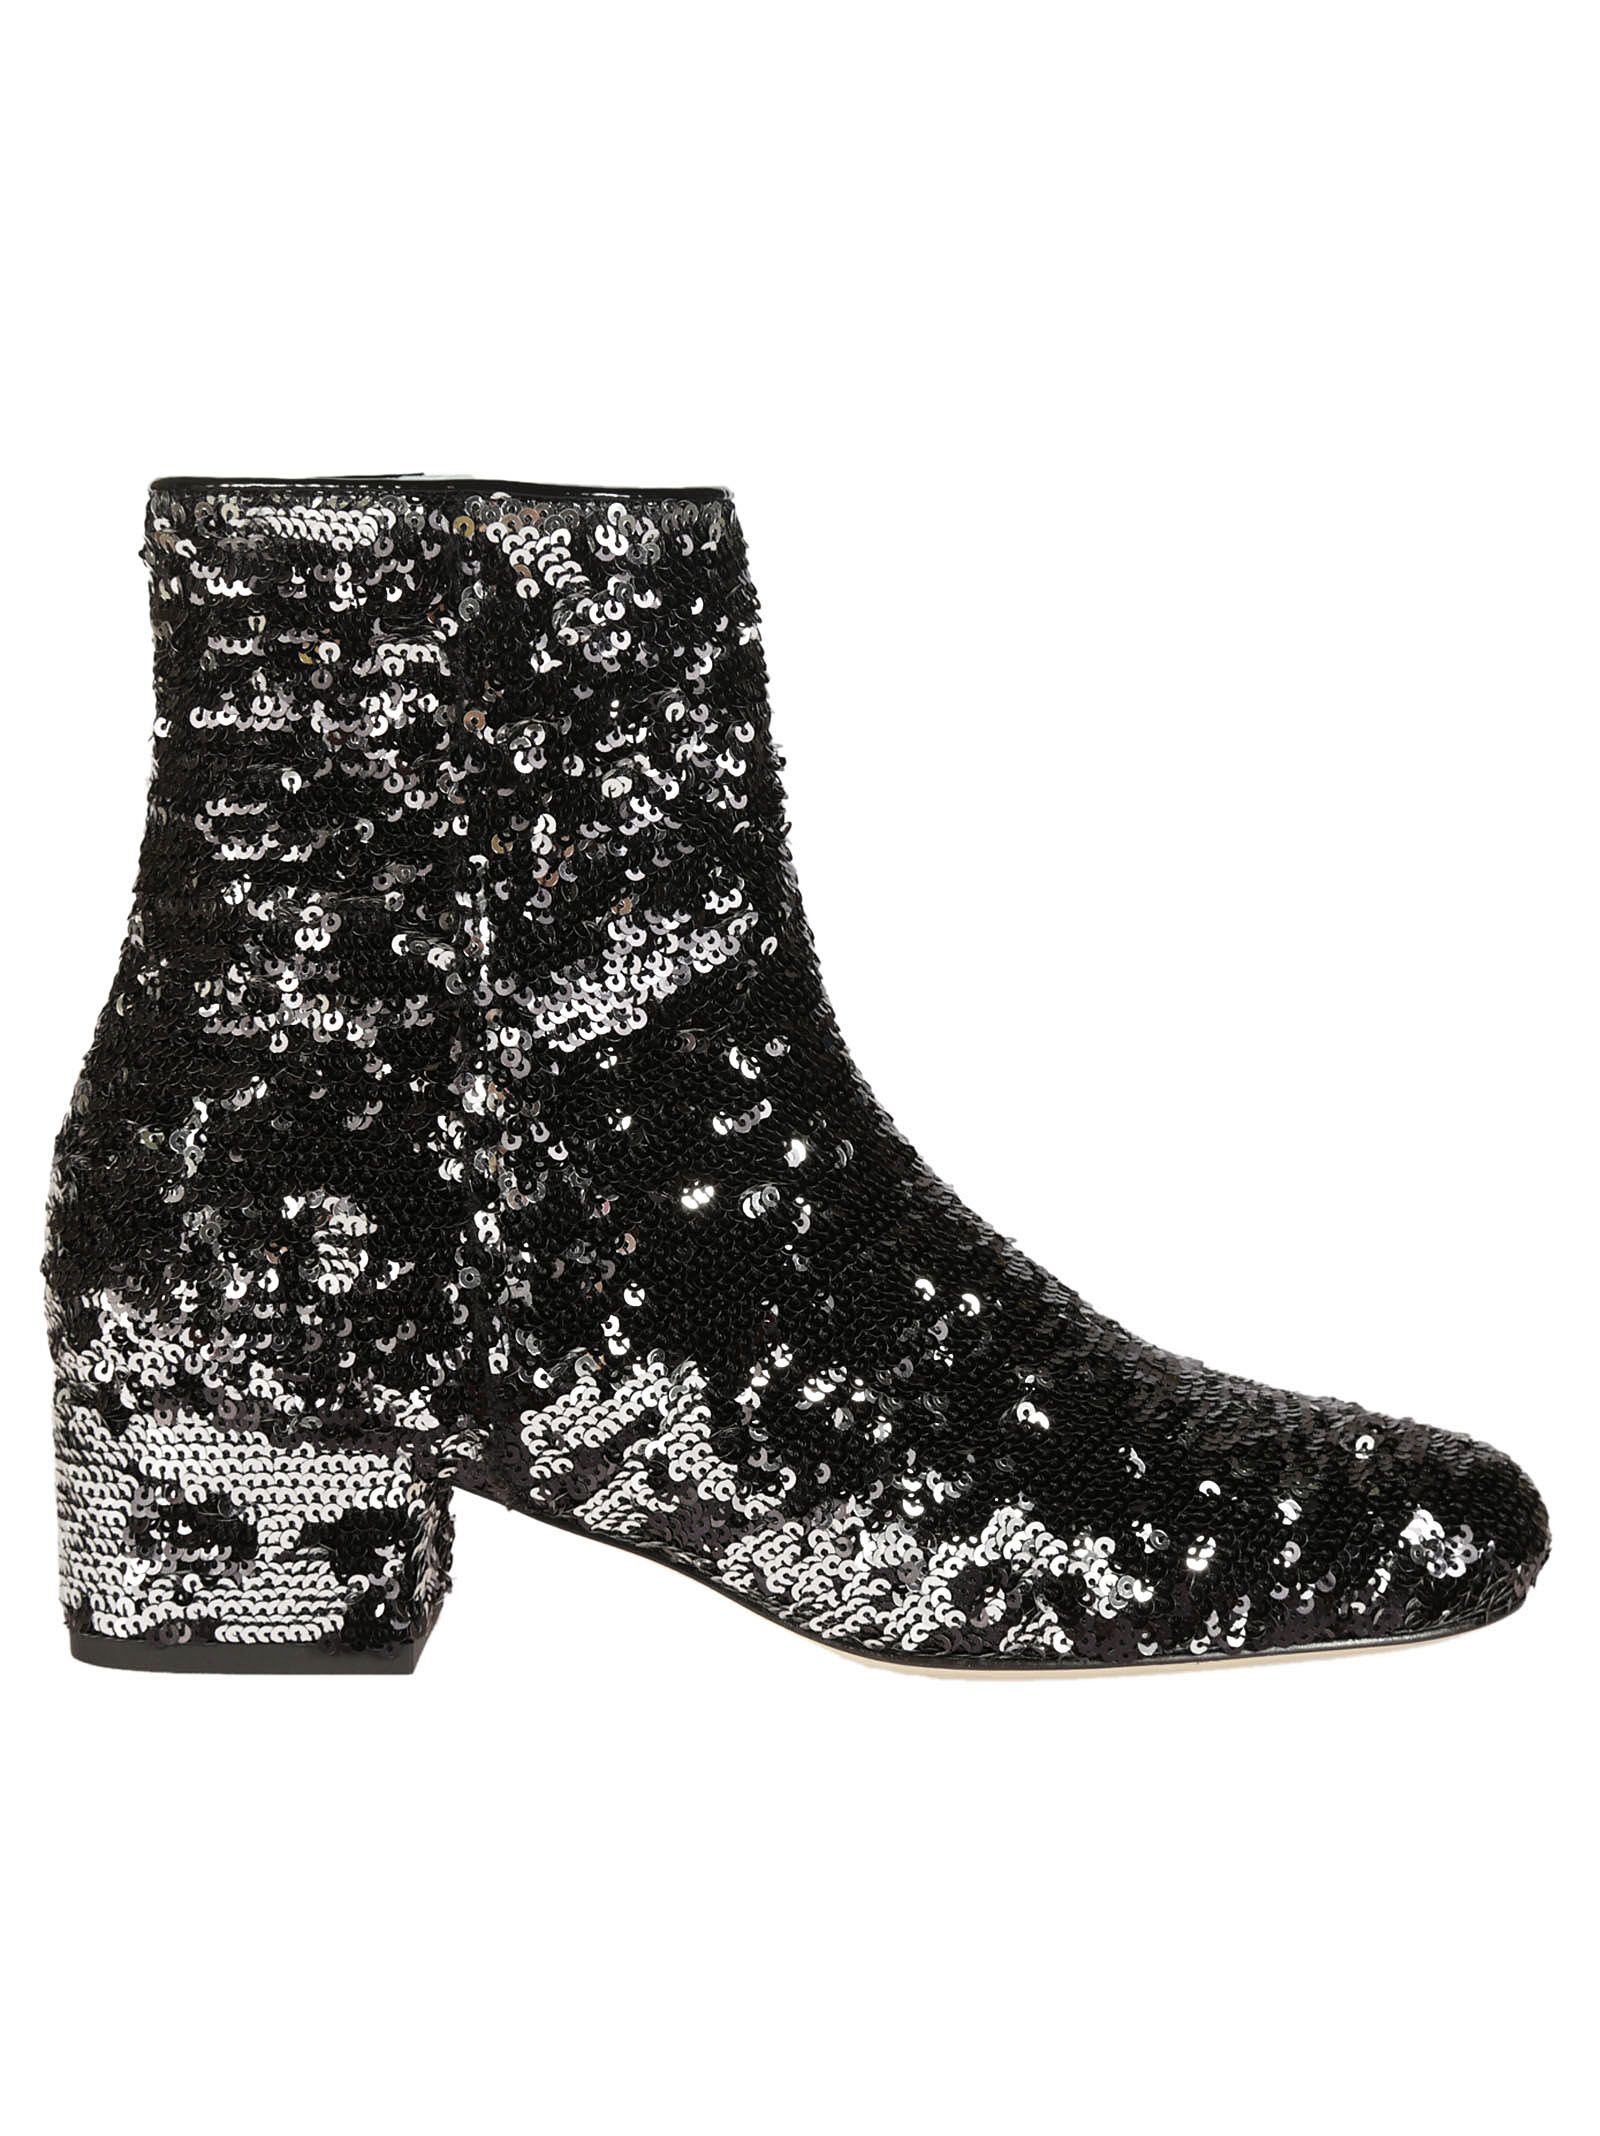 Chiara Ferragni Candy Street Ankle Boots